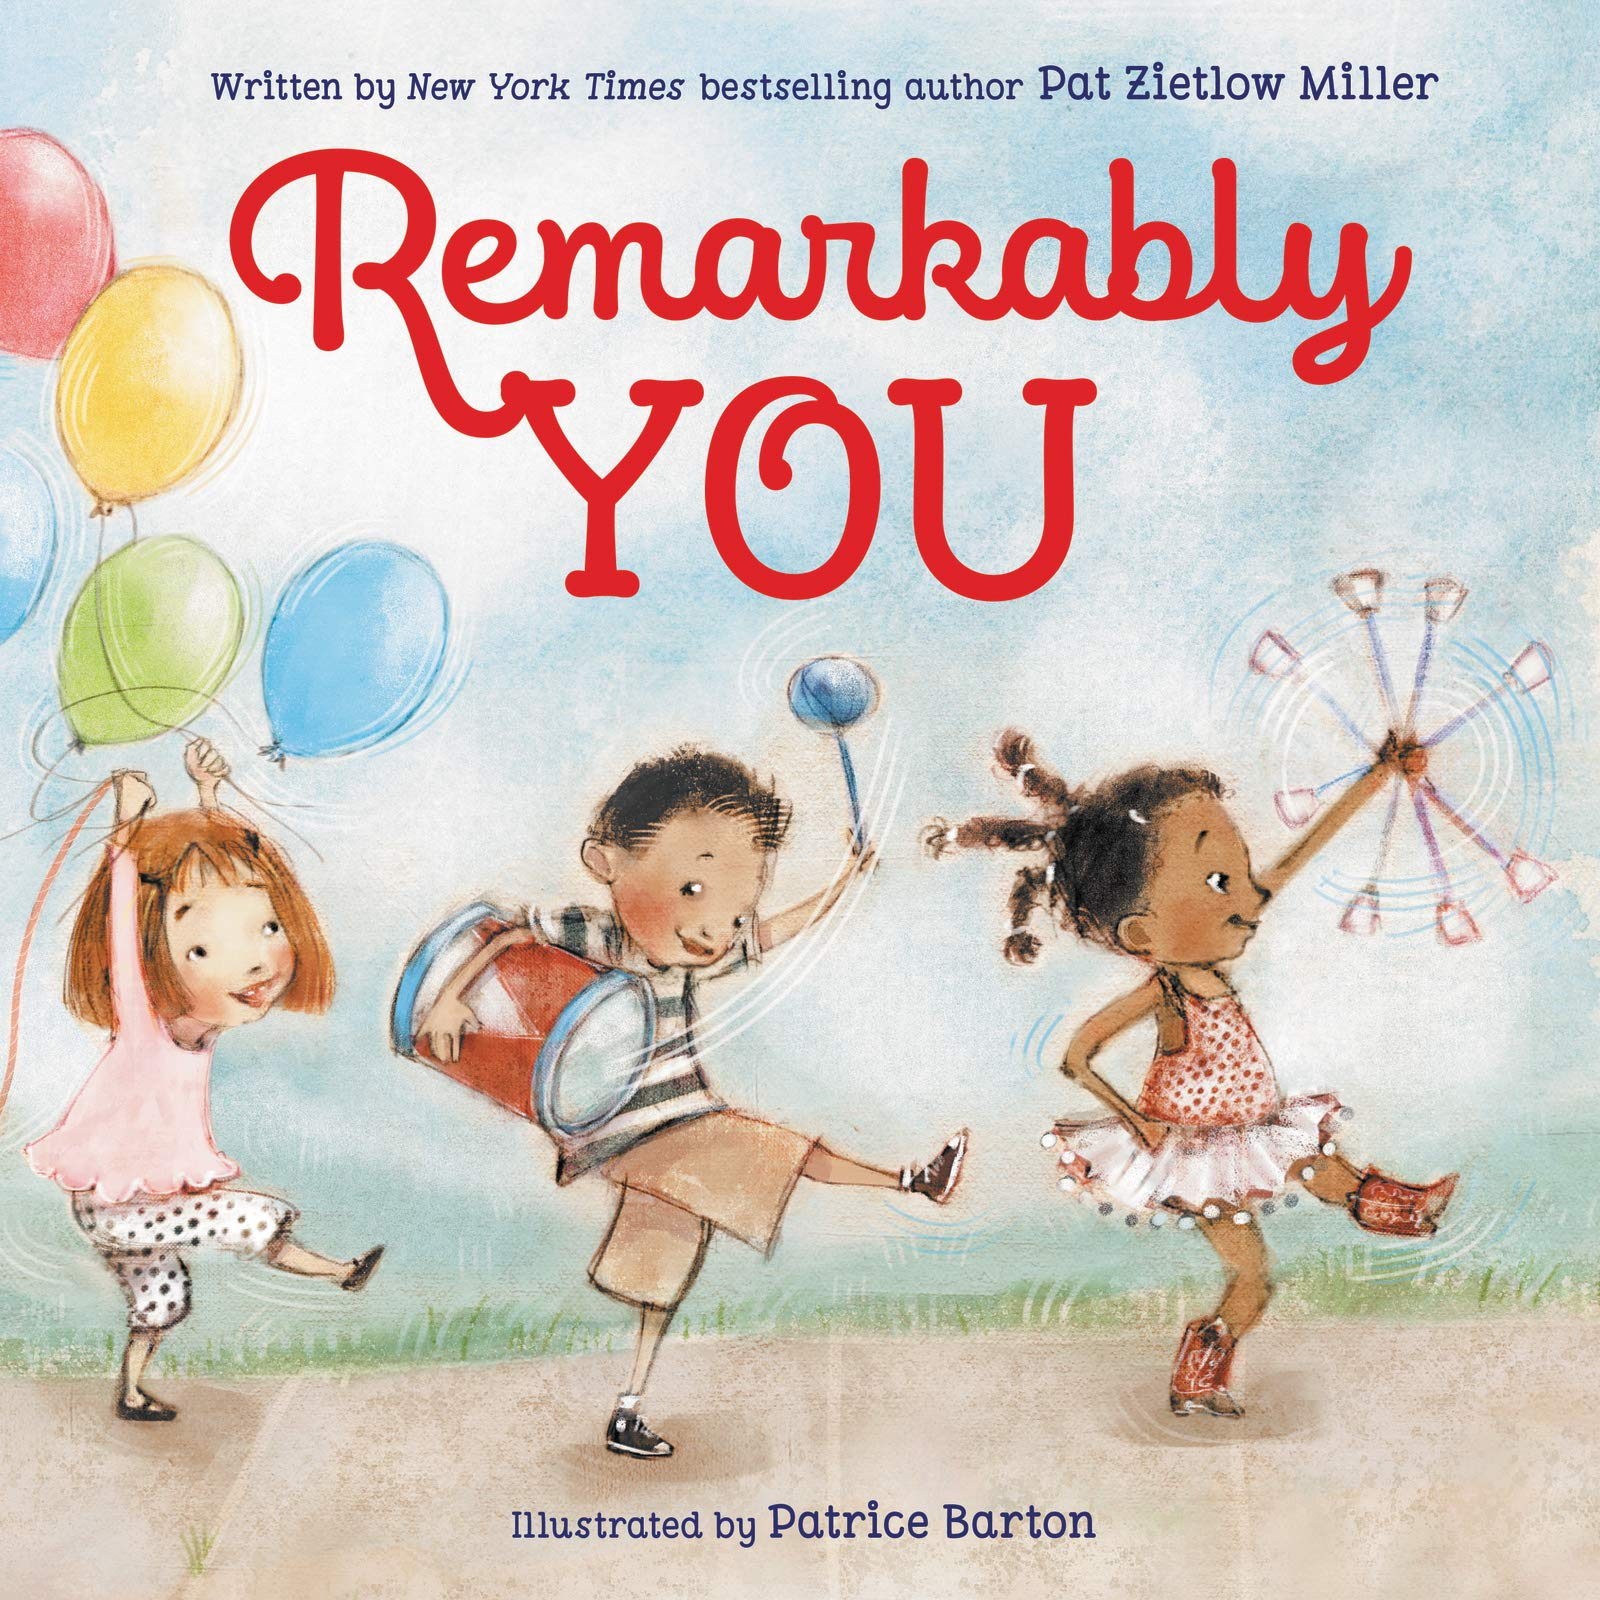 Picture Books that celebrate being yourself  - remarkably you.jpg